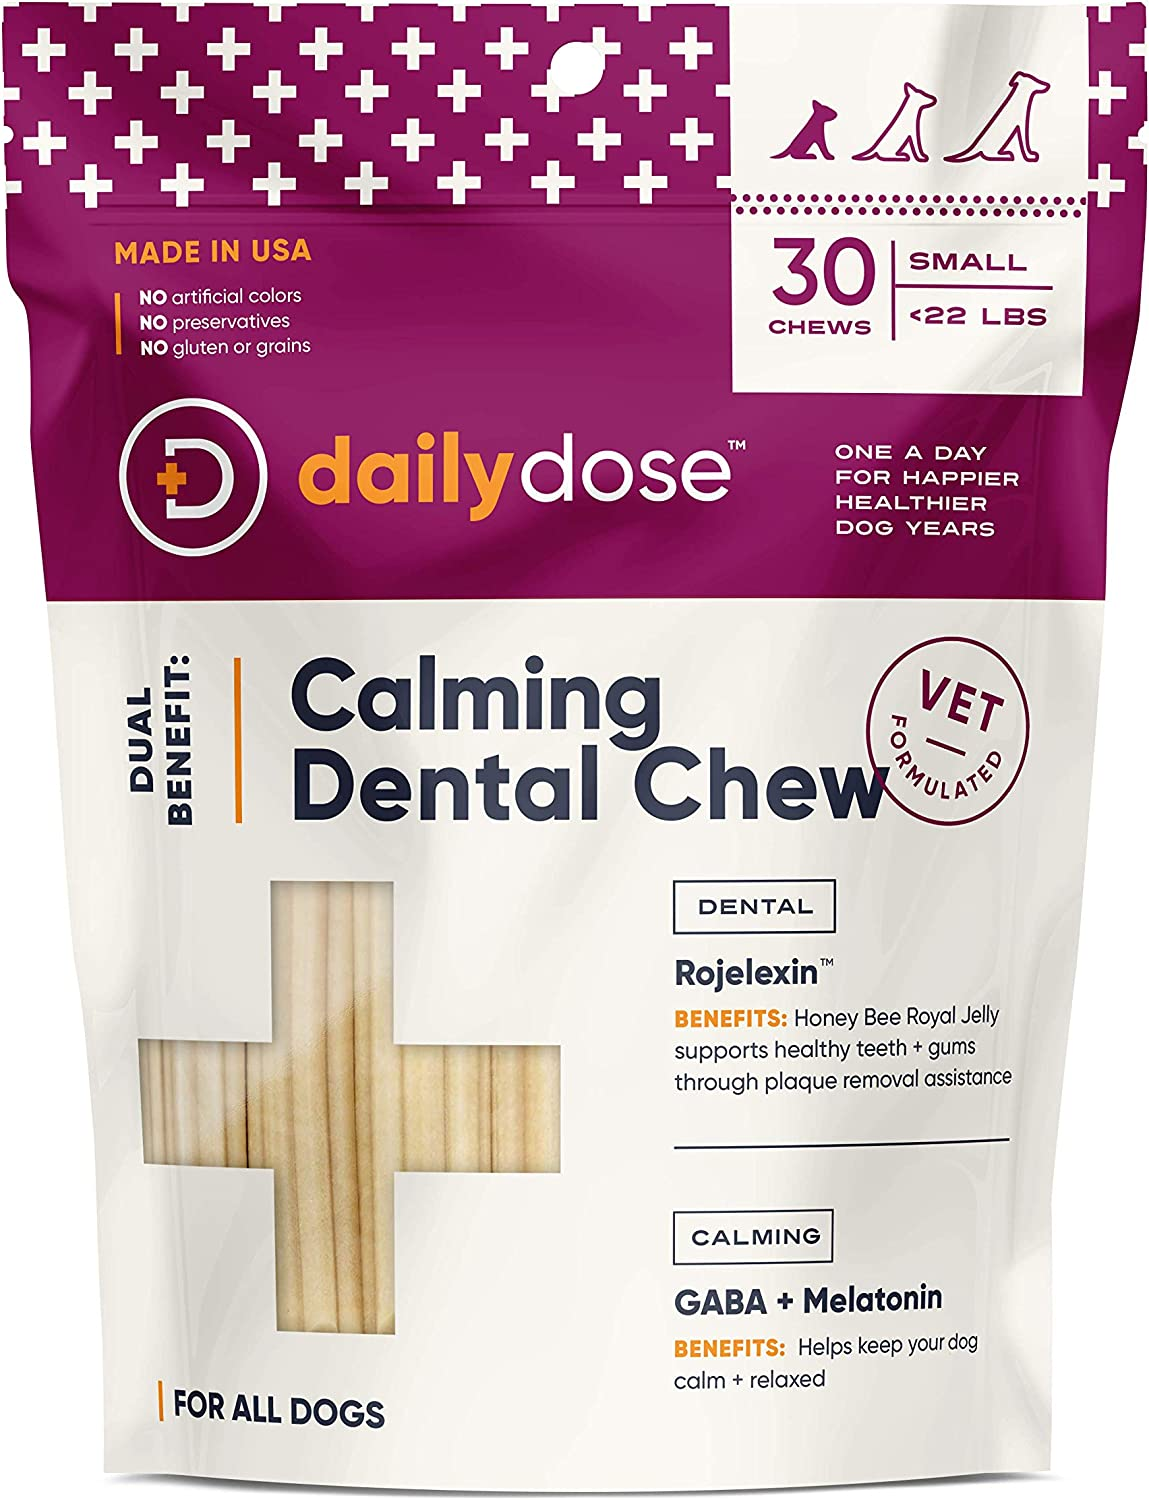 dailydose Dual Benefit Dog Dental Chews   Vet-Formulated Dental Treat + Daily Supplement   Calming, Joint, Skin, Heart Varieties   Removes Plaque for Healthy Teeth & Gums   Made in USA